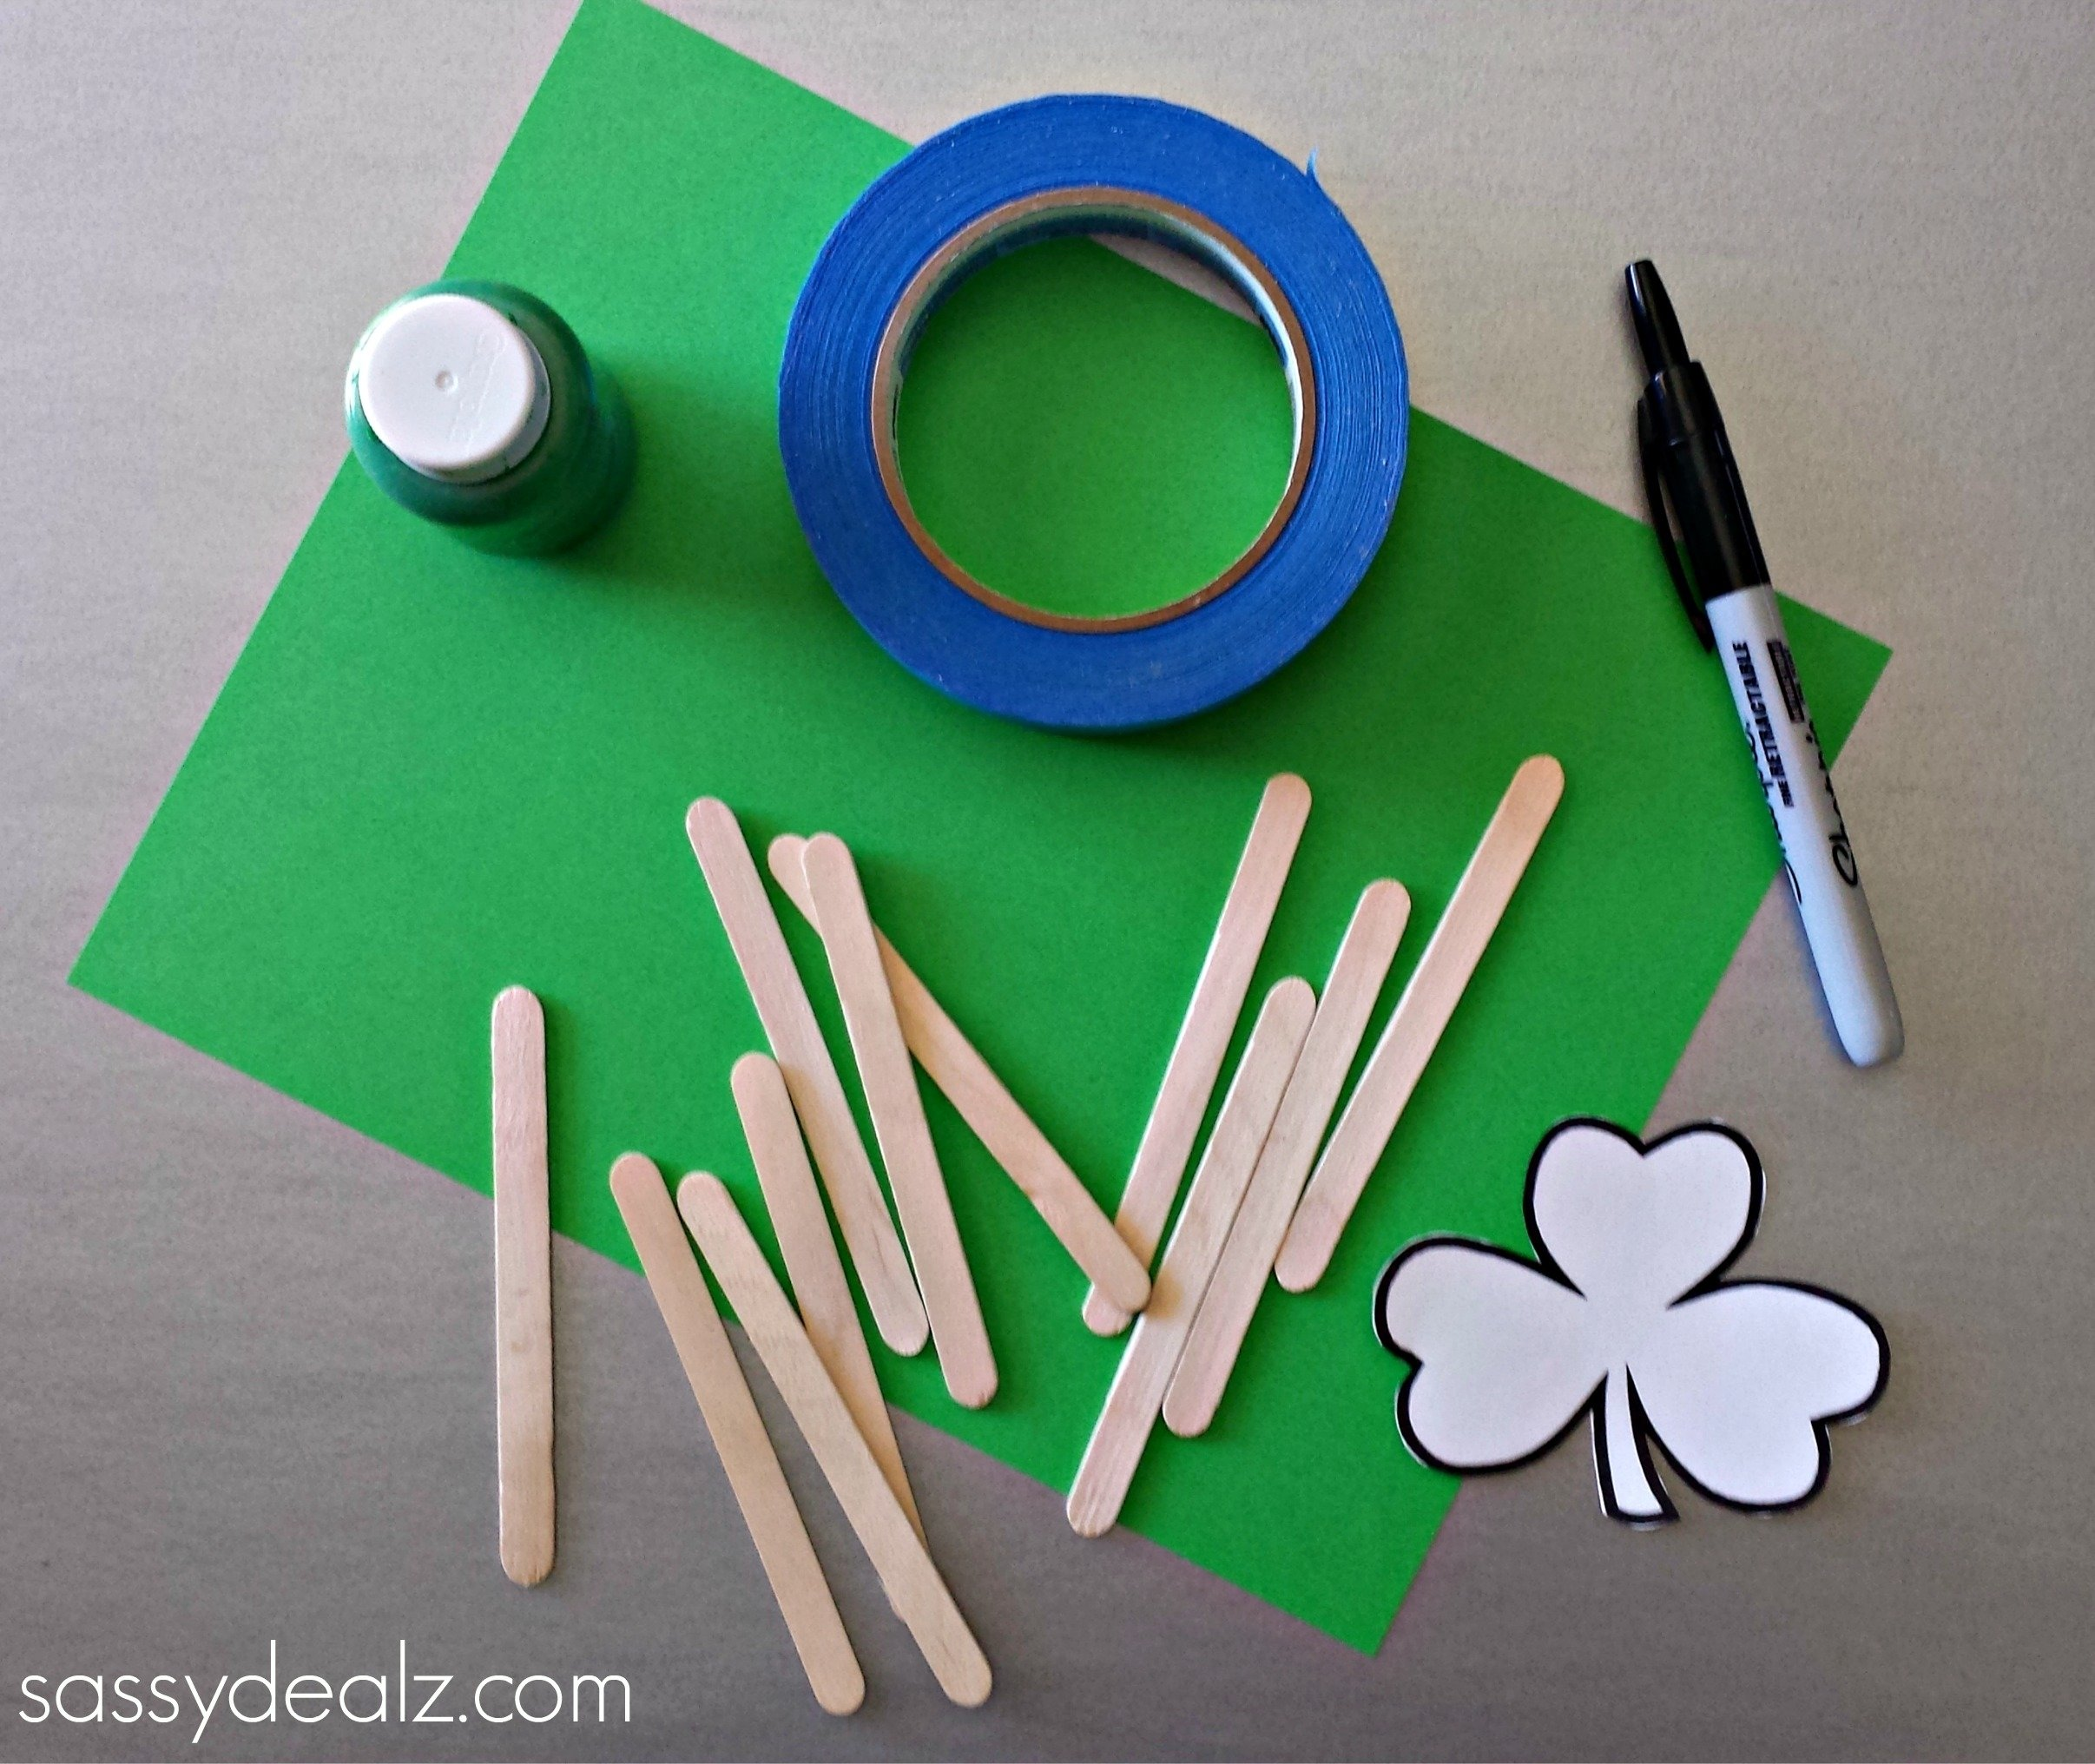 10 Cute St Patrick Day Craft Ideas st patricks day popsicle stick craft diy puzzles crafty morning 2021